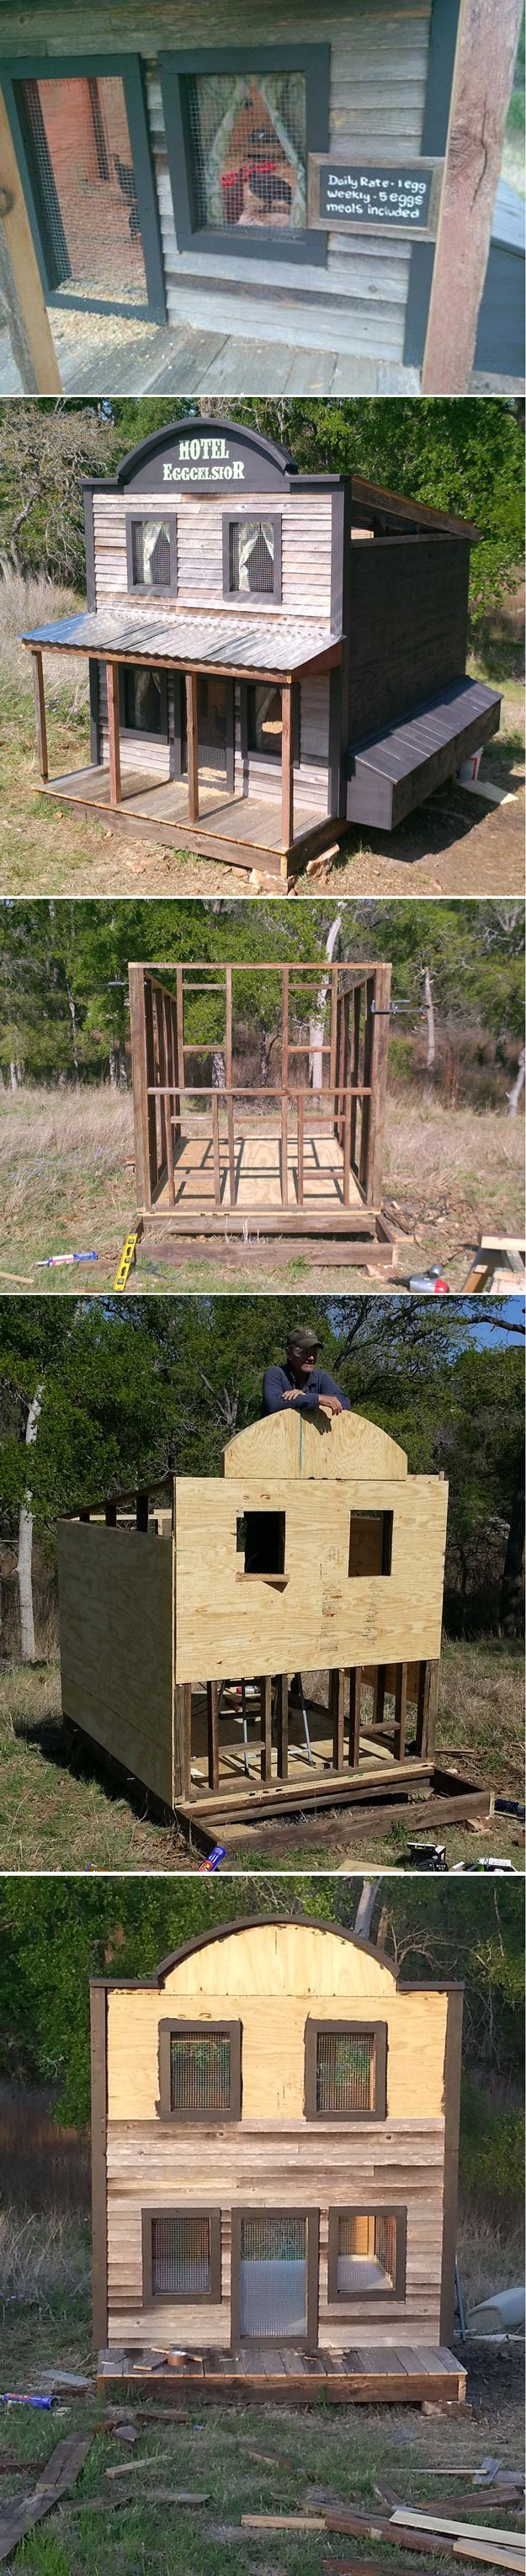 best 25 duck house ideas on pinterest duck coop raising ducks